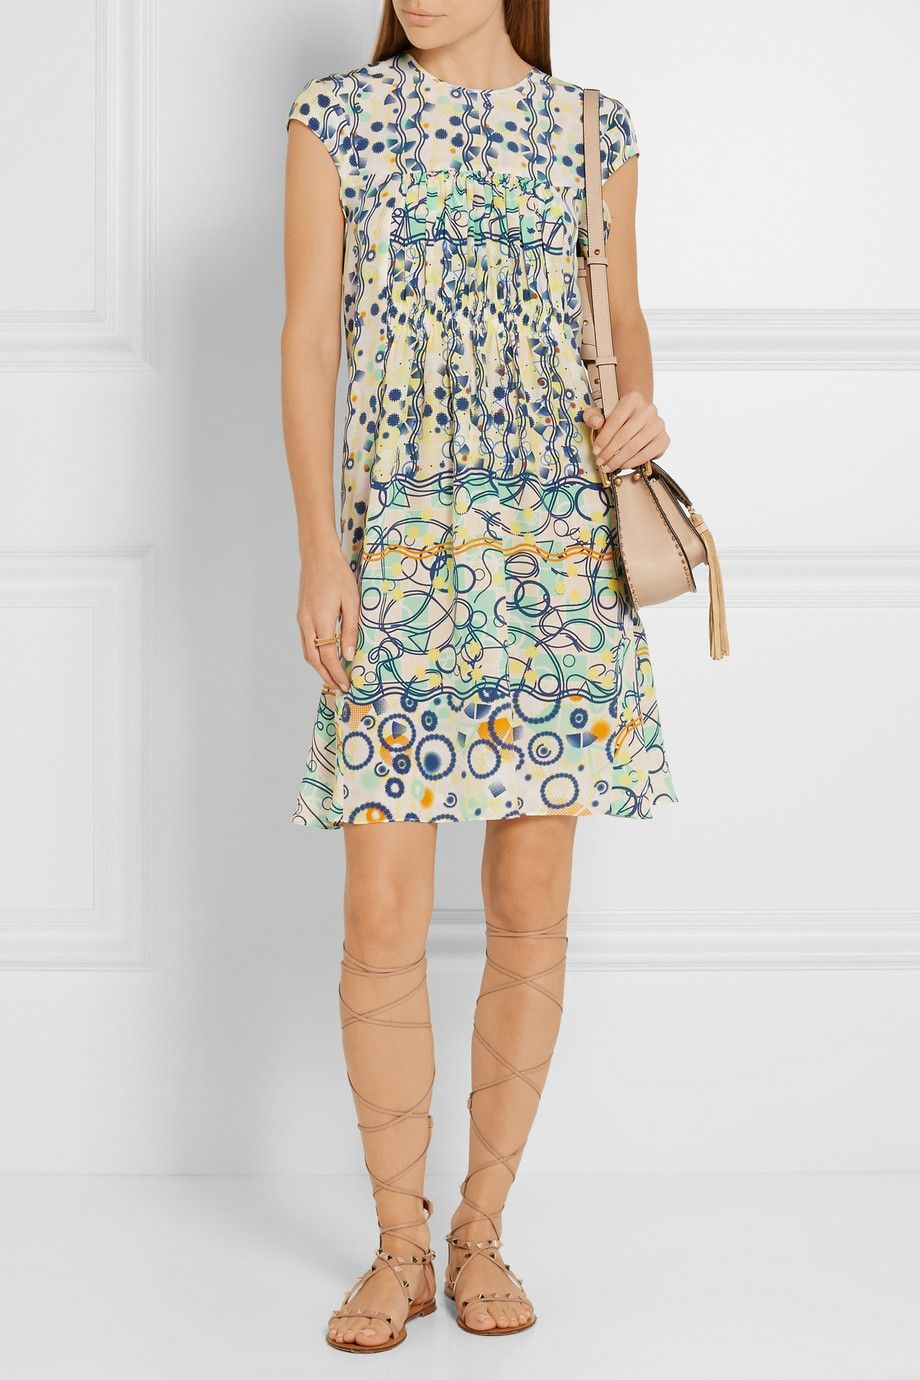 Peter pilotto kali printed washedsilk dress netaportercom